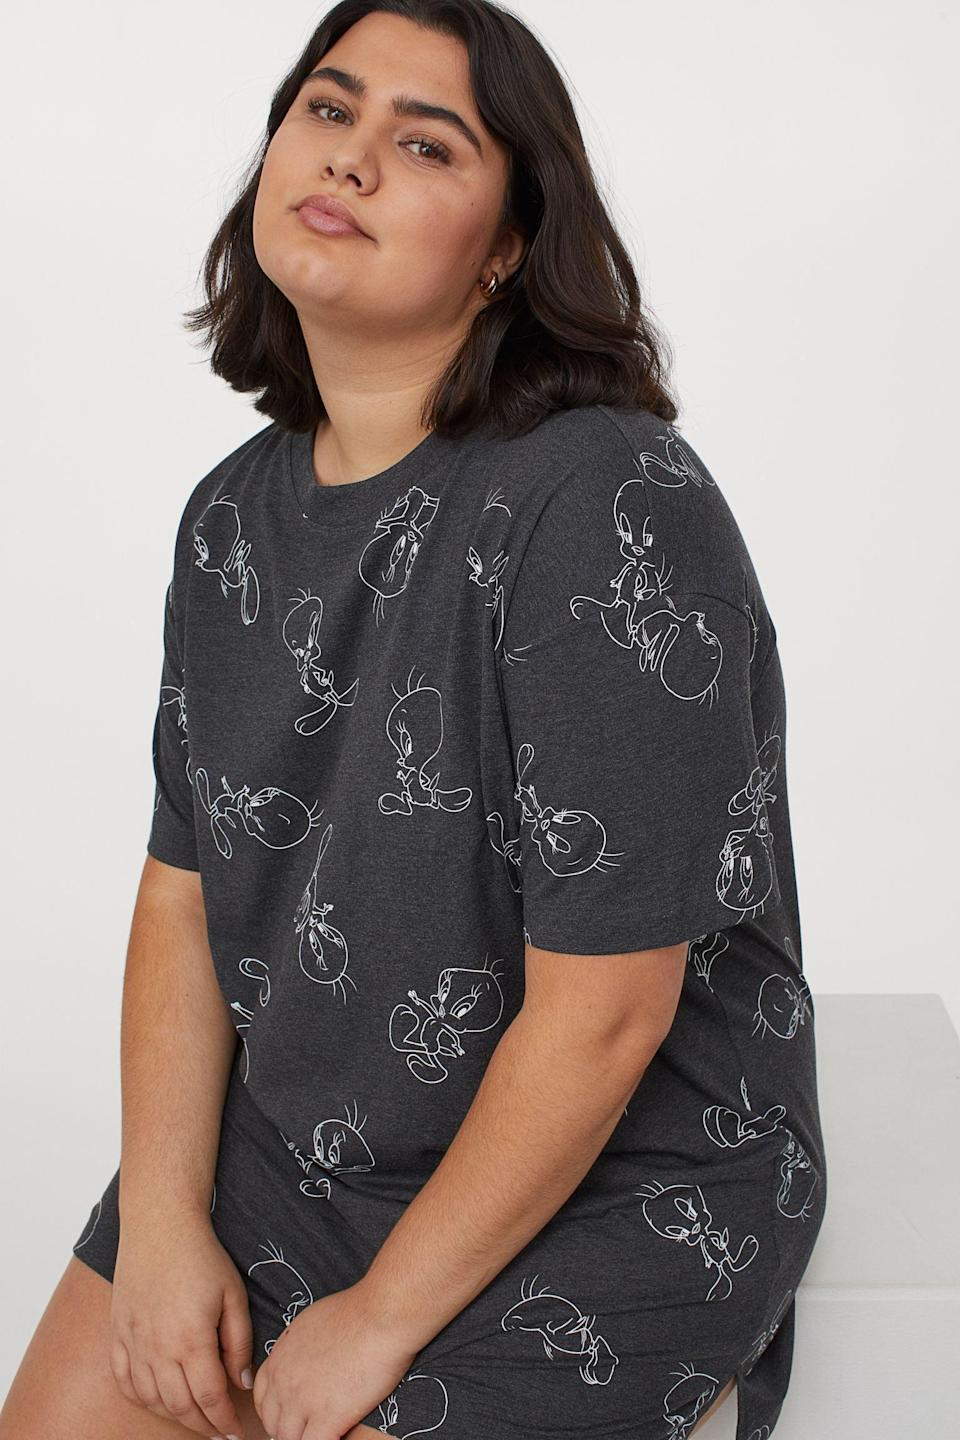 <p>This <span>H&amp;M+ Printed Nightgown</span> ($18) looks comfortable and playful.</p>